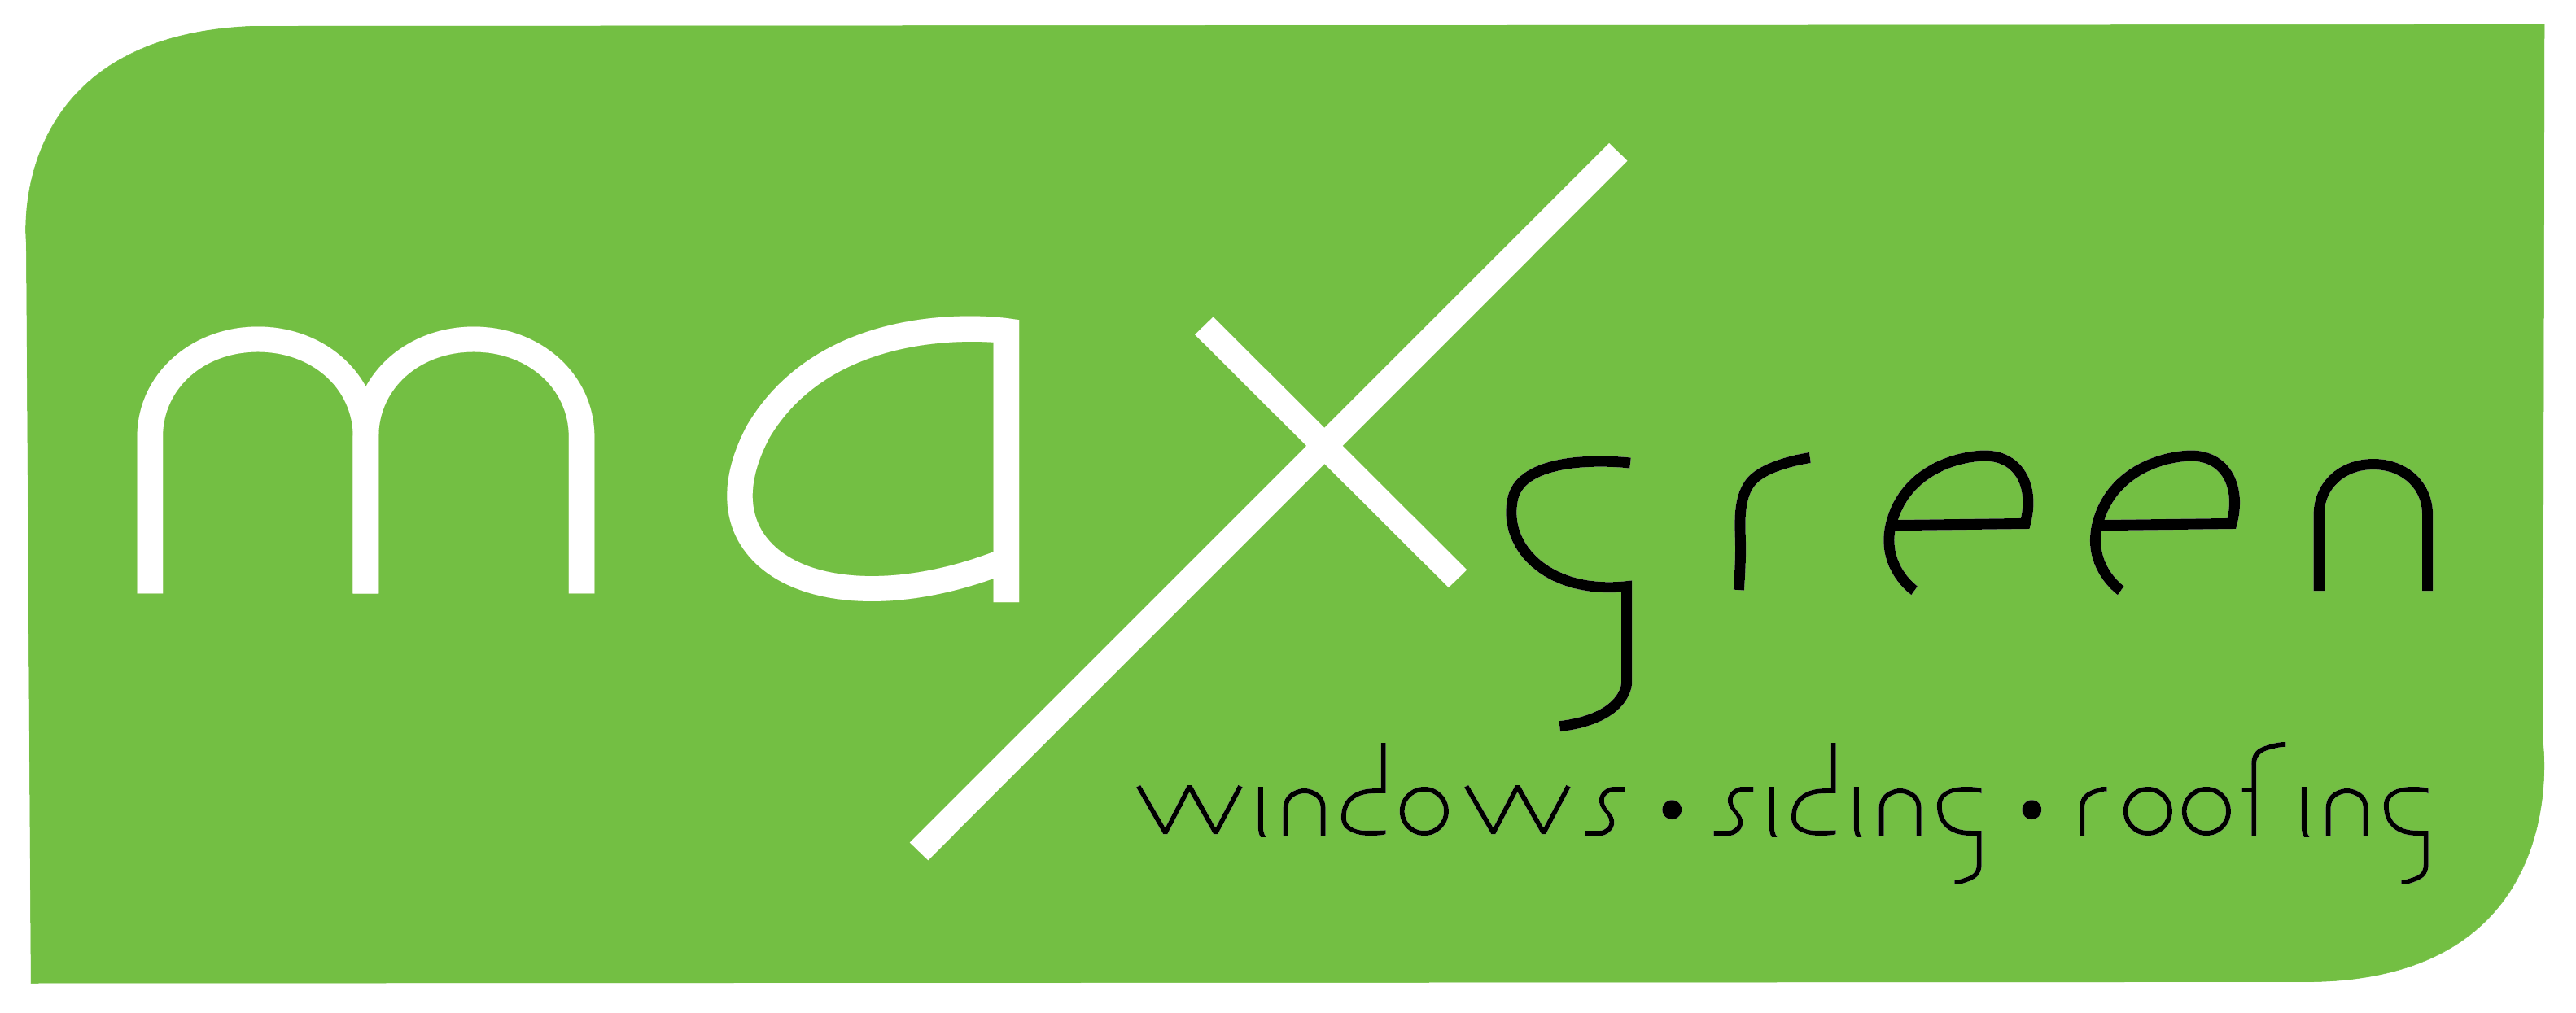 Windows, Siding and Roofing Calgary - Logo